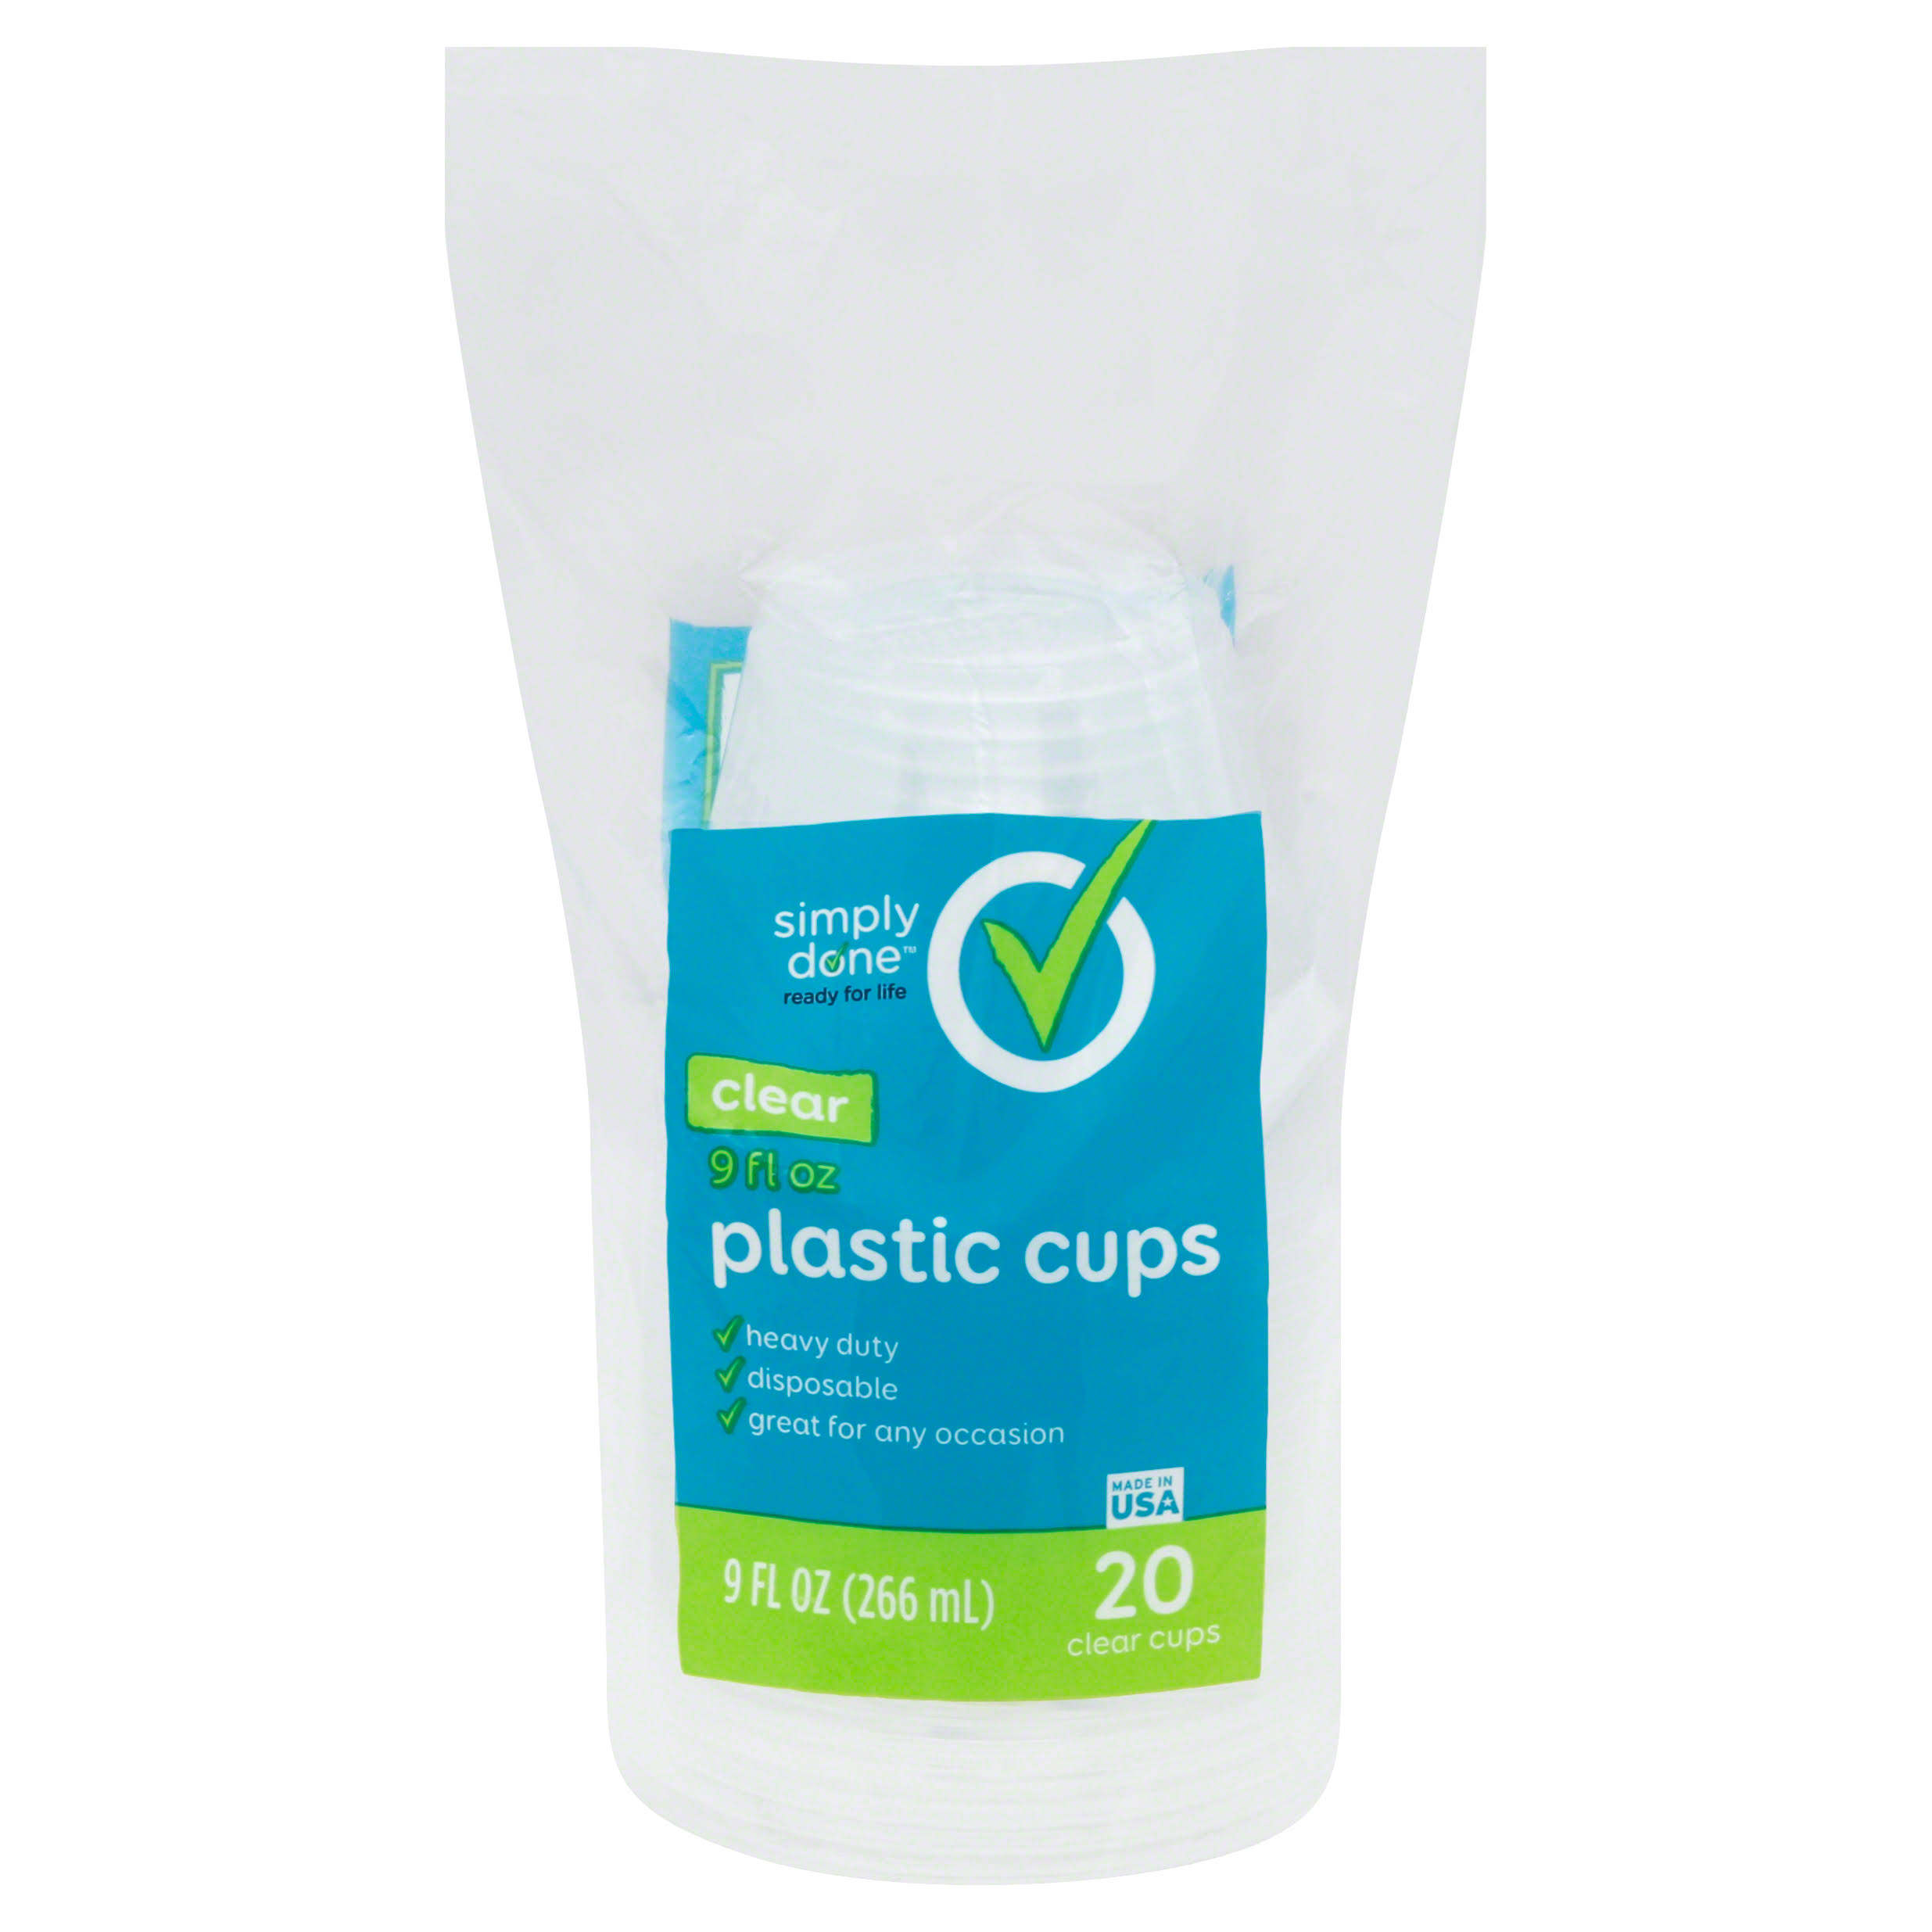 Simply Done Plastic Cups, Clear, 9 Fluid Ounce - 20 cups